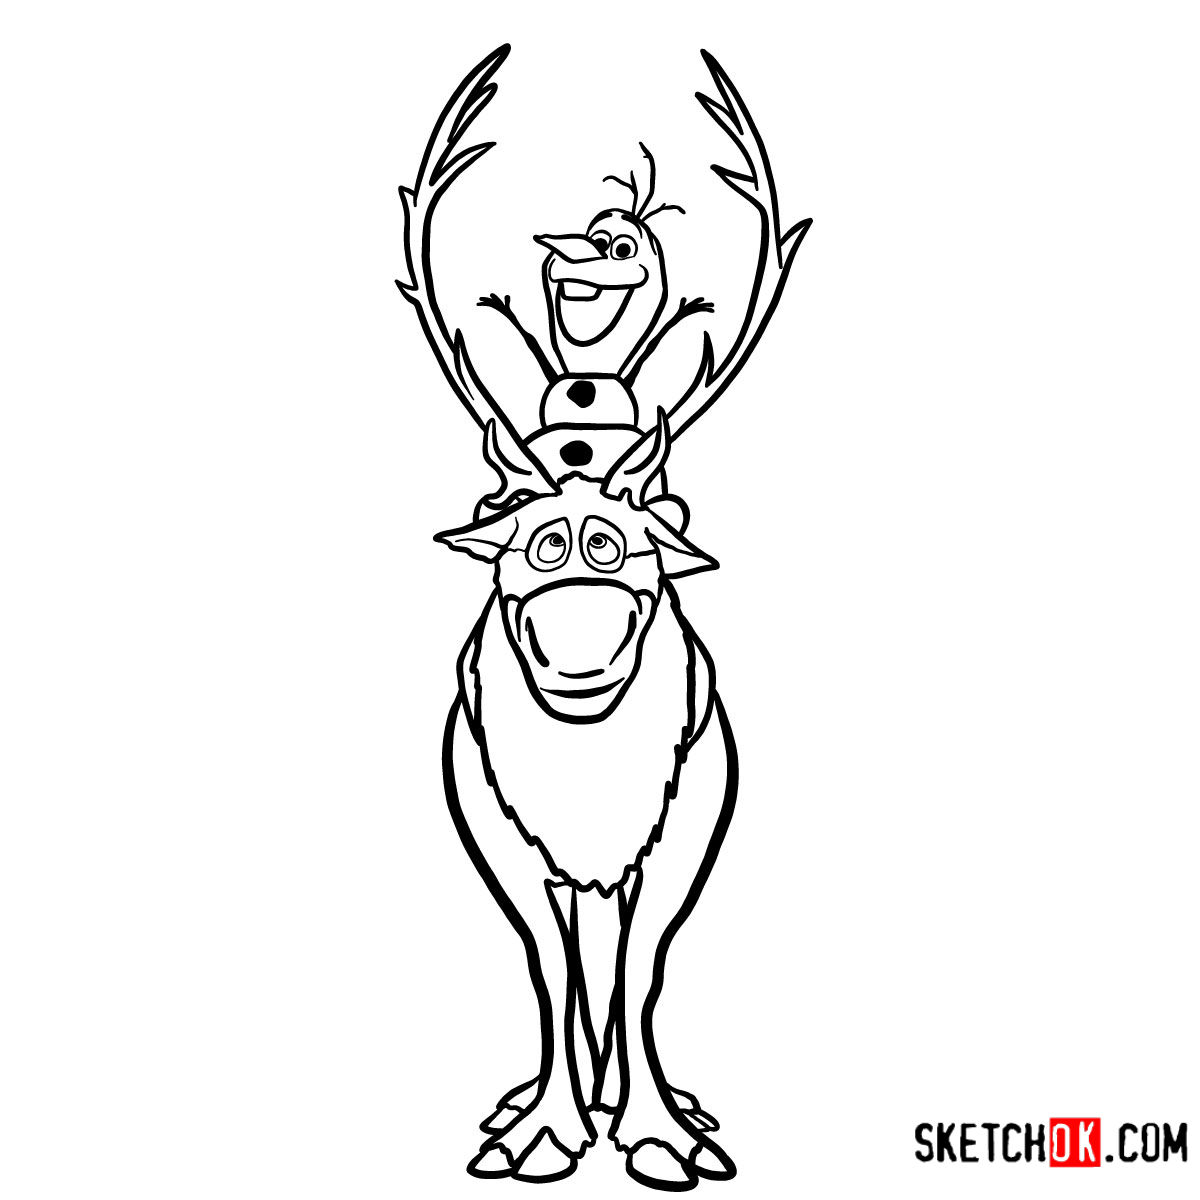 How To Draw Olaf Riding Sven Frozen Sketchok Step By Step Drawing Tutorials